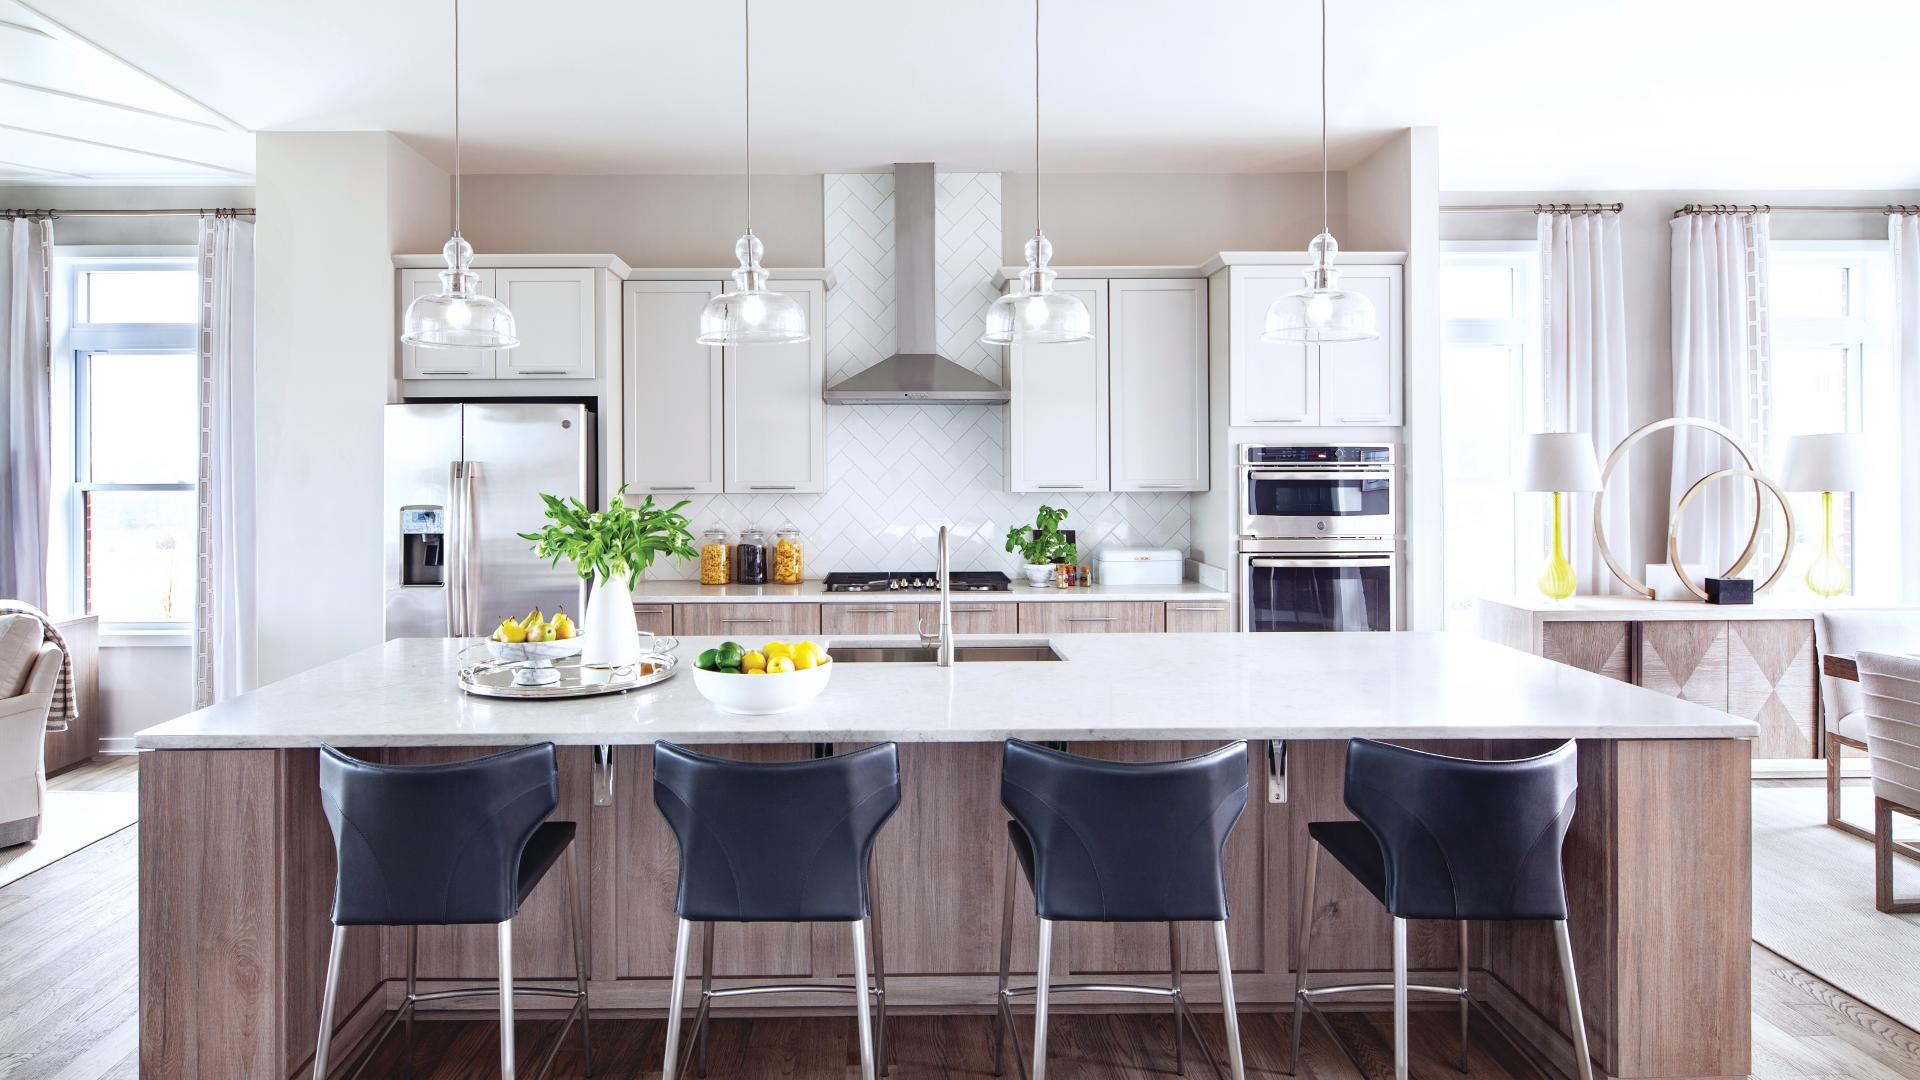 Graphic depiction: Well designed kitchens with numerous upgrade options